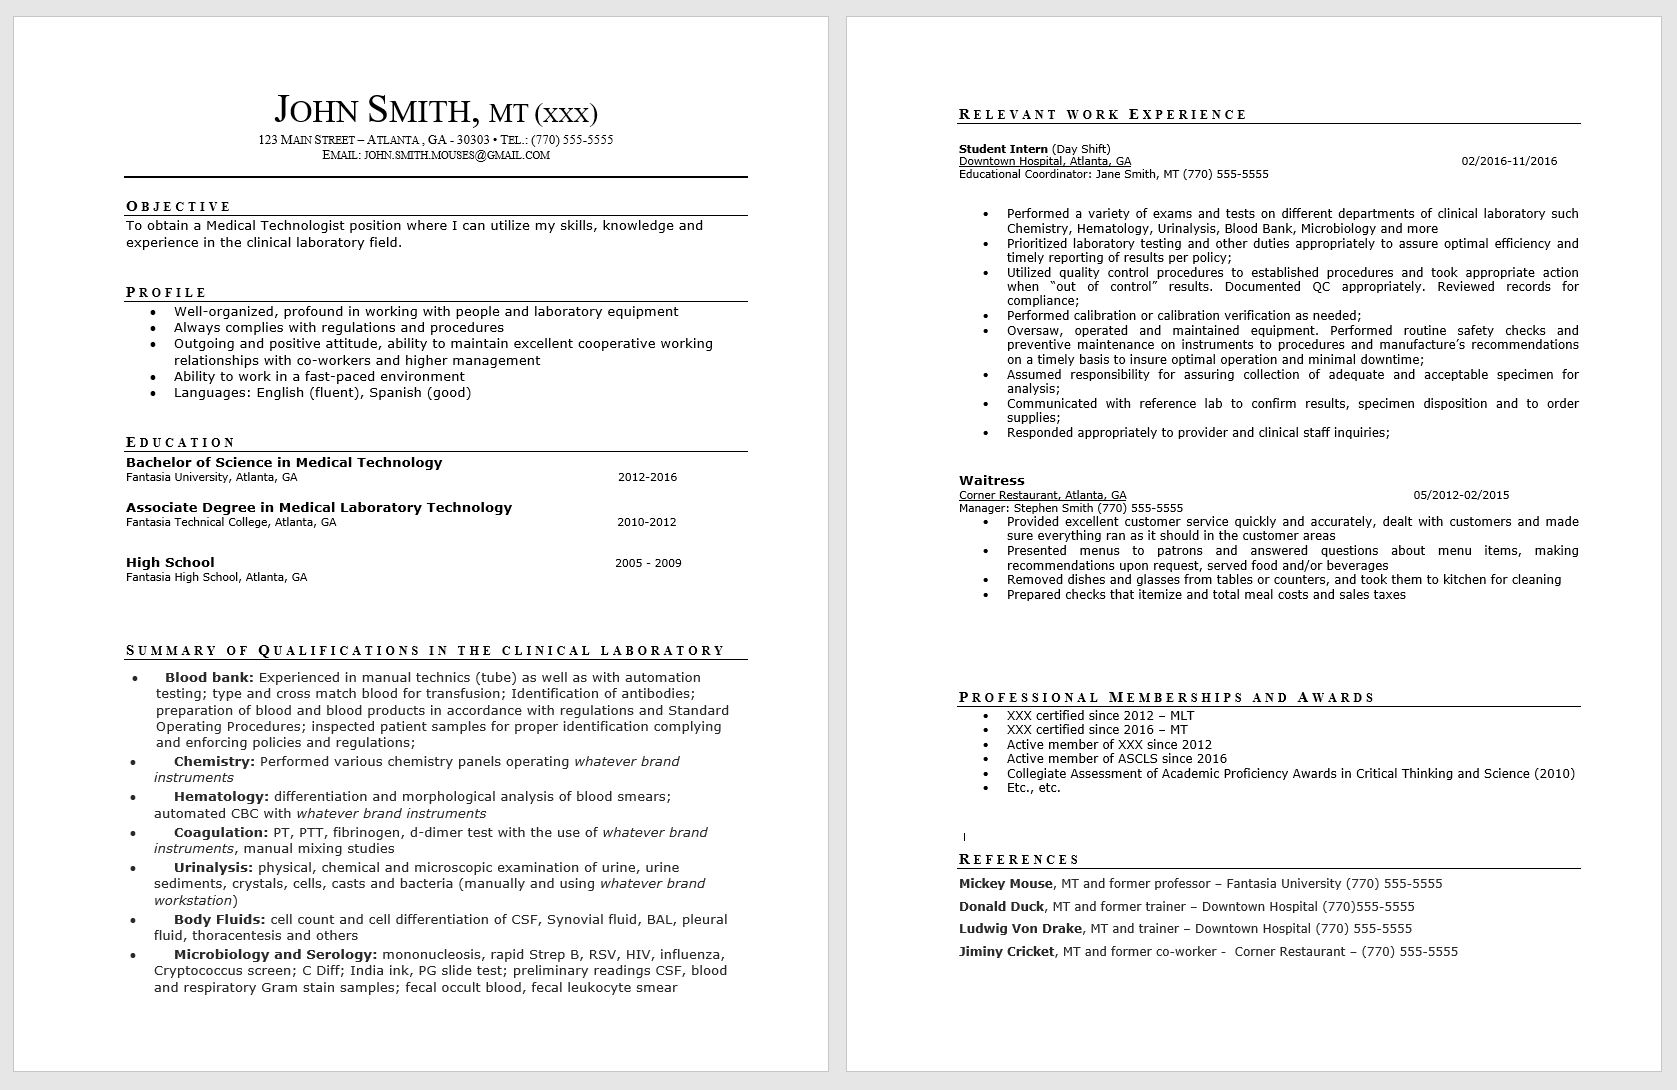 résumé guide american society for clinical laboratory science